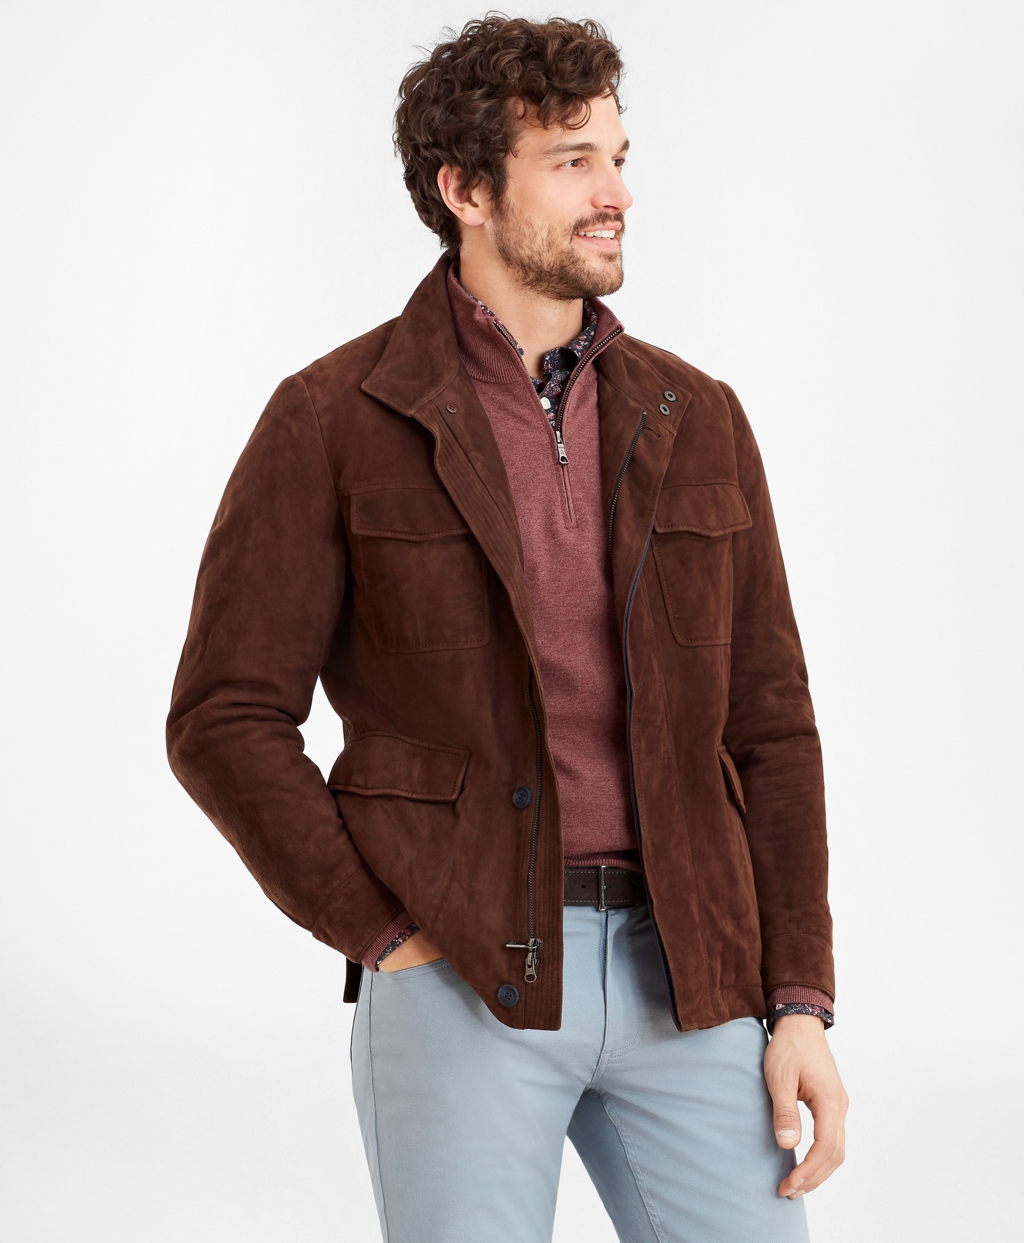 Men's Vintage Workwear Inspired Clothing Brooks Brothers Mens Suede Field Jacket $908.60 AT vintagedancer.com